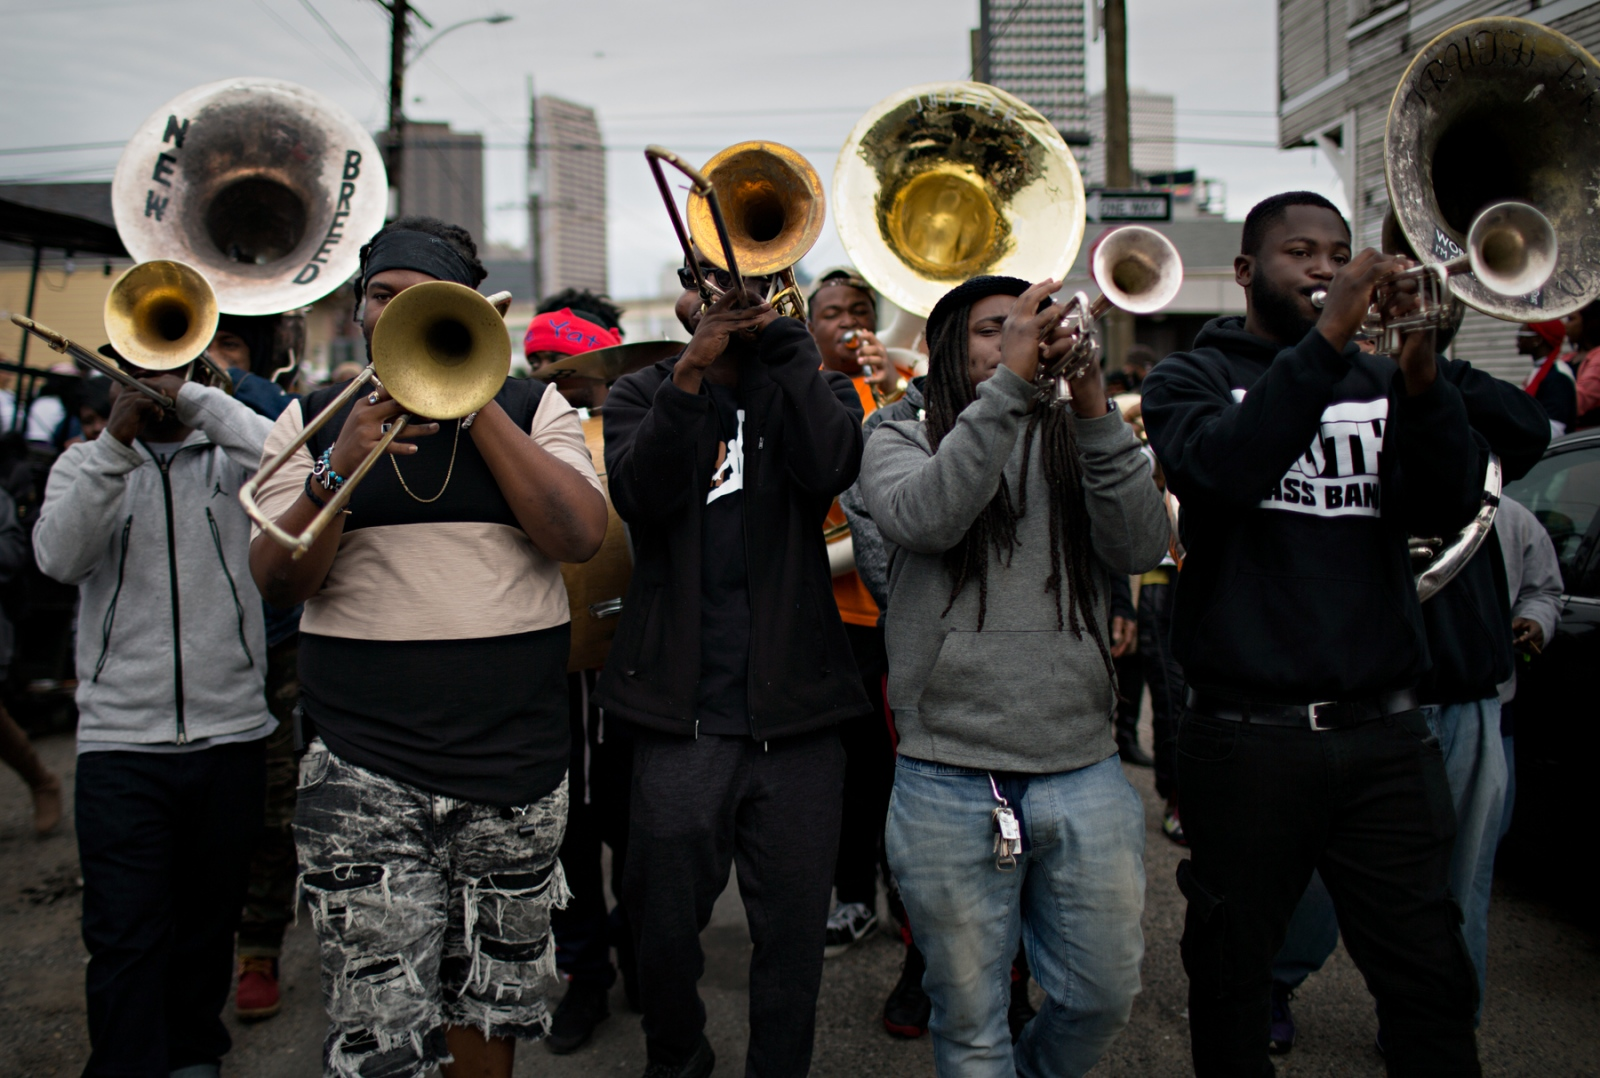 The brass band is the heart of the Second Line Parade.